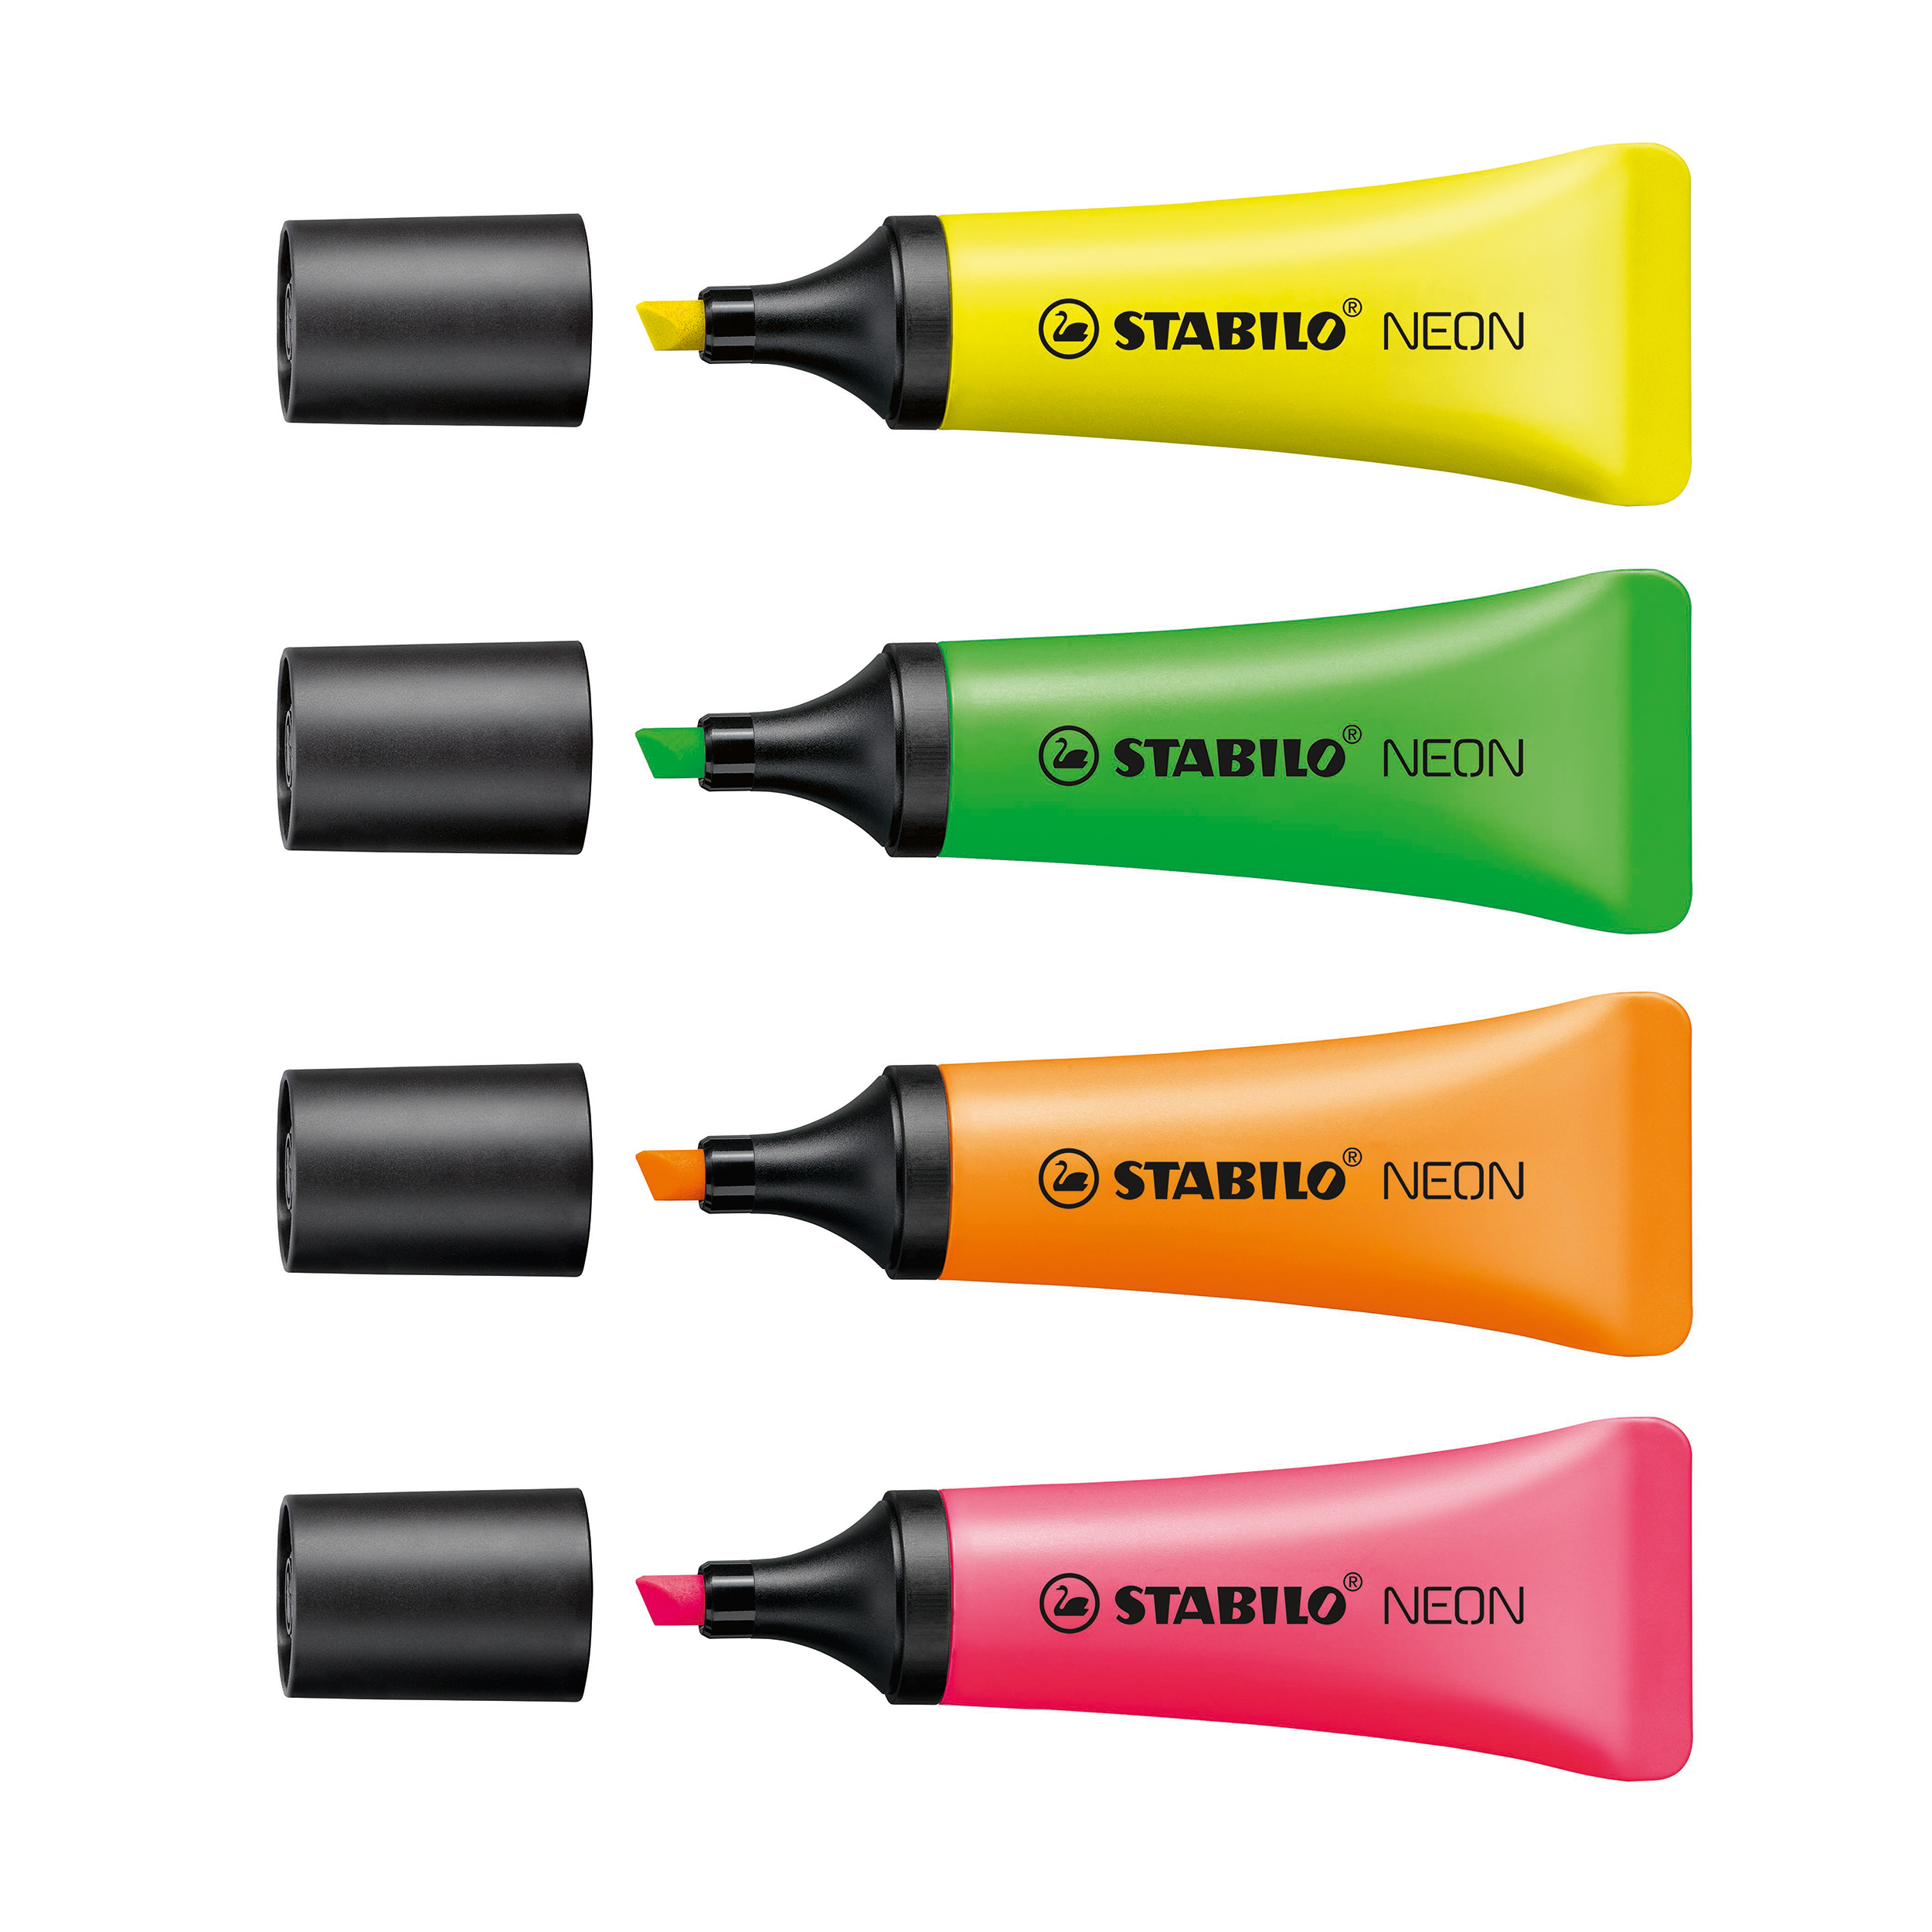 Stabilo Neon Highlighter Chisel Tip 2-5mm Wallet Neon Ink Assorted Ref 72/4-1 Pack 4